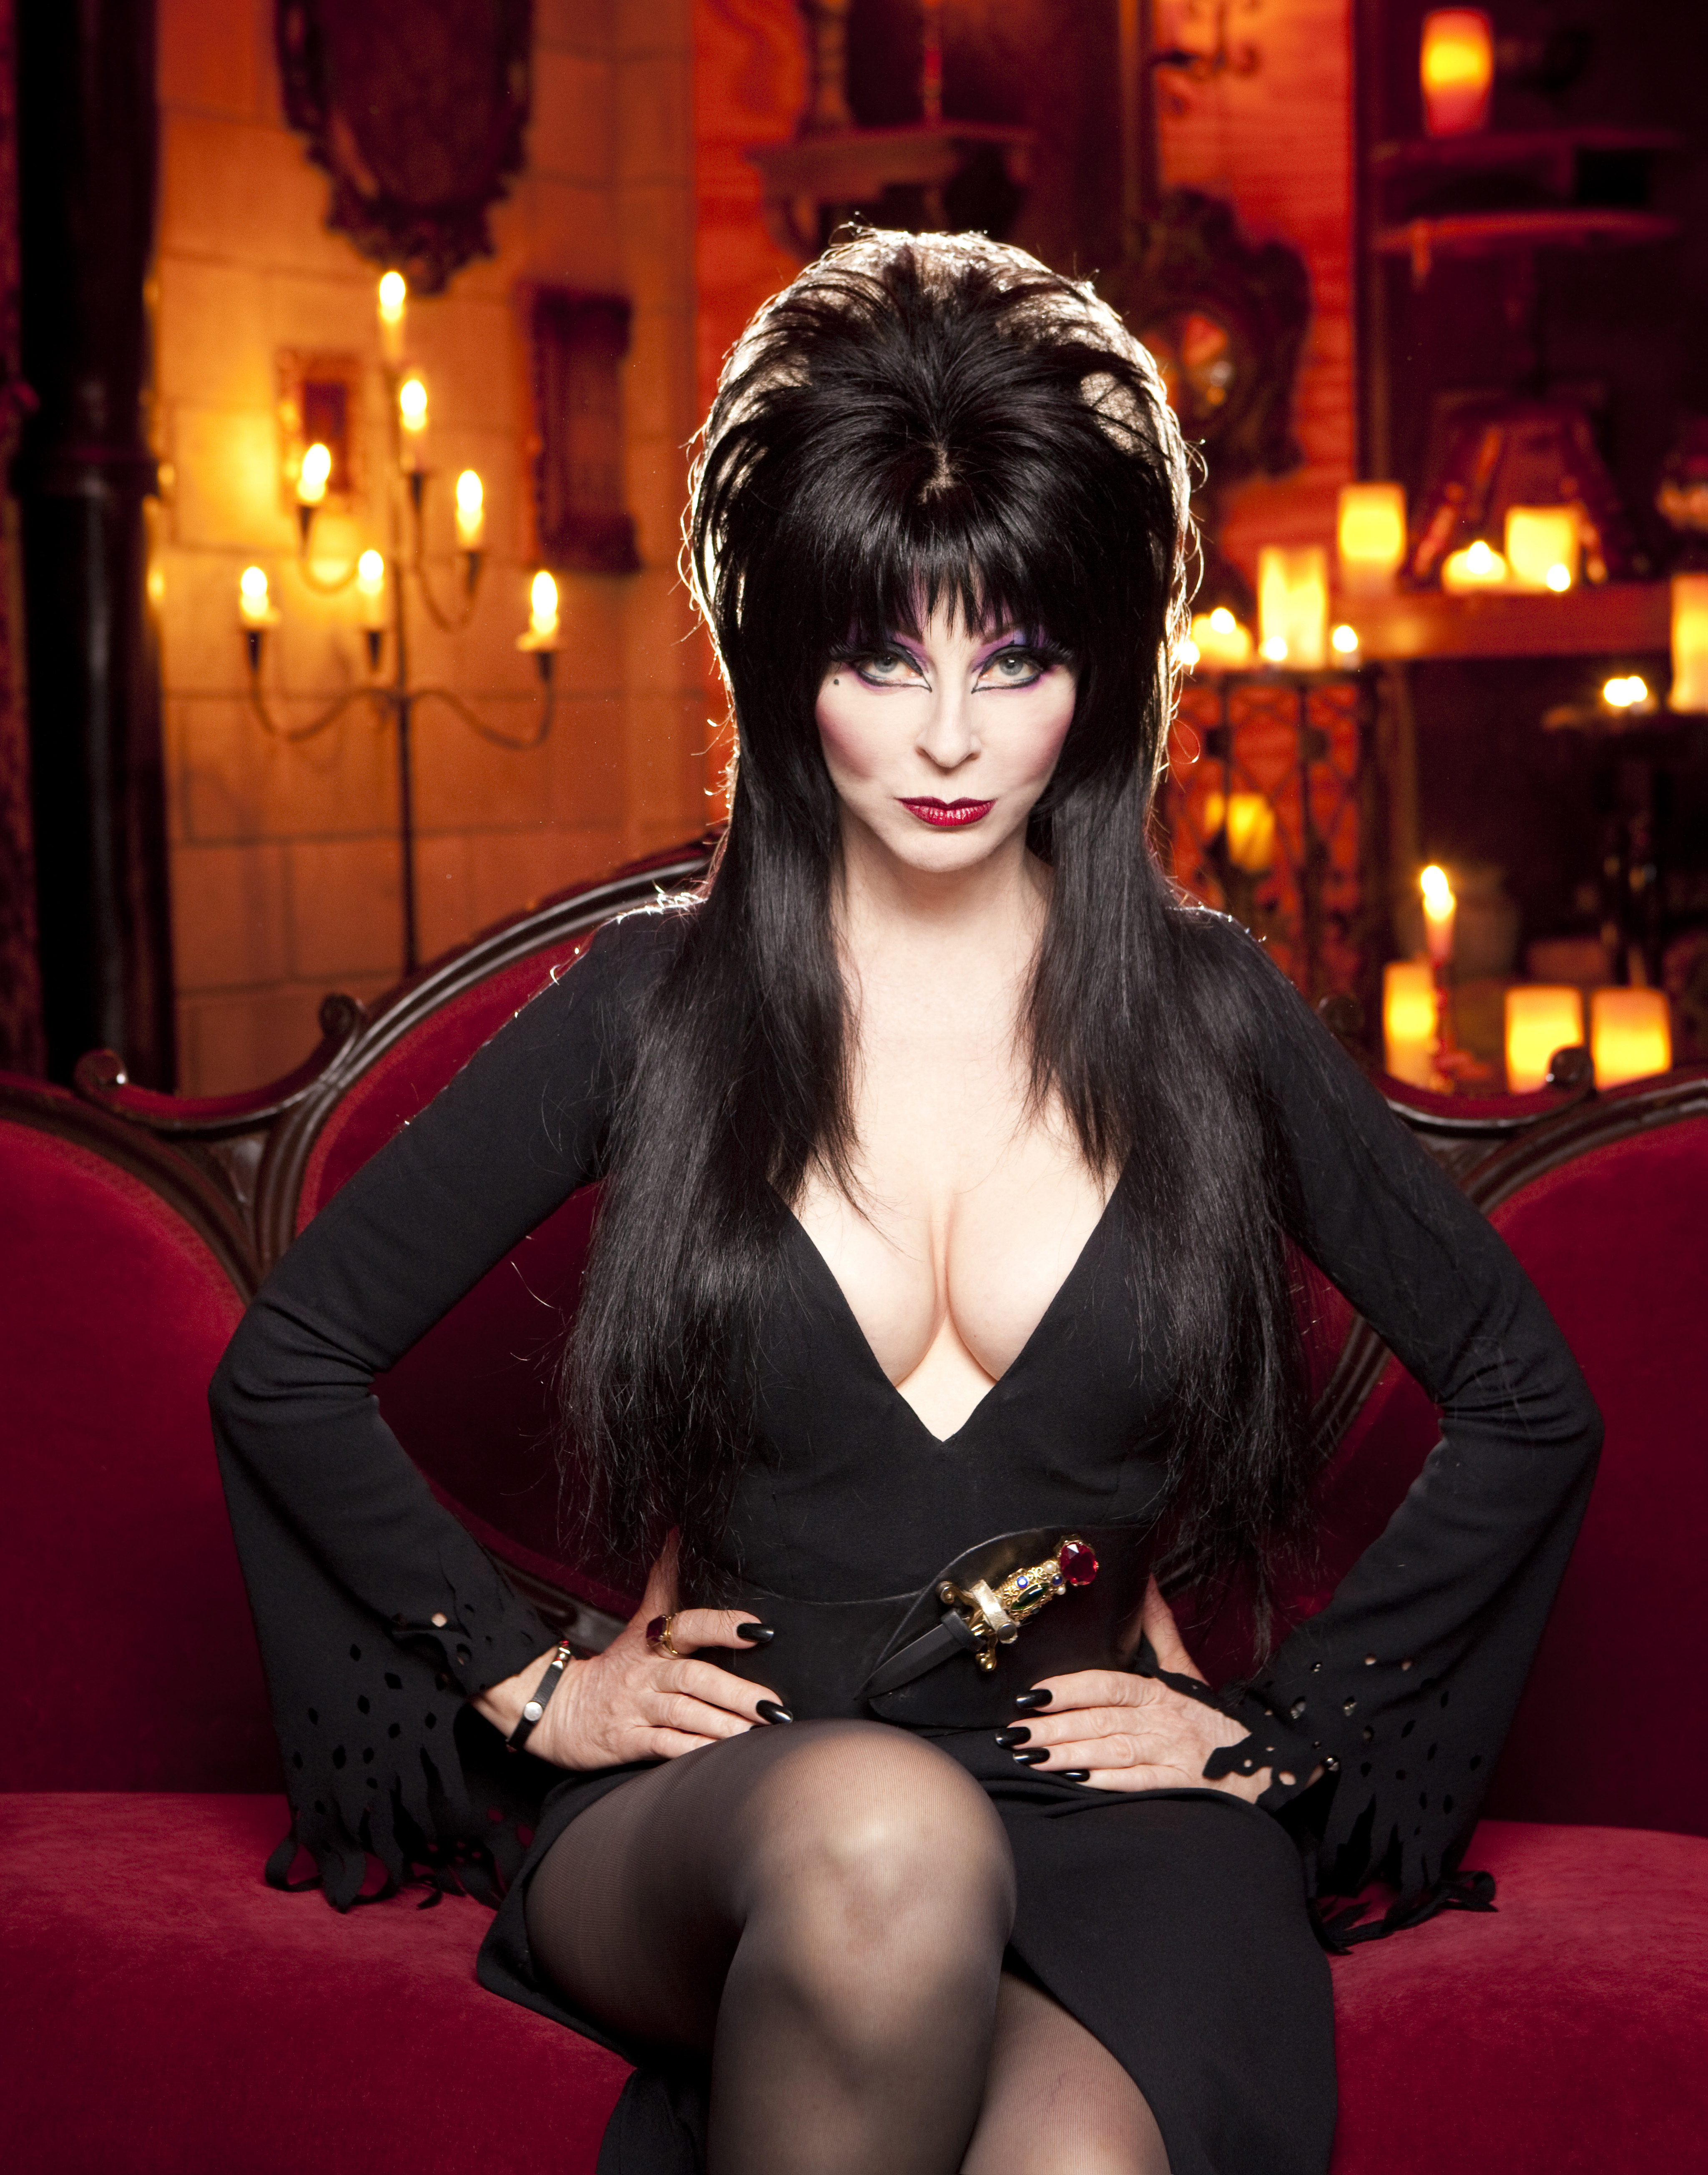 Elvira, Mistress of the Dark Rocks Halloween